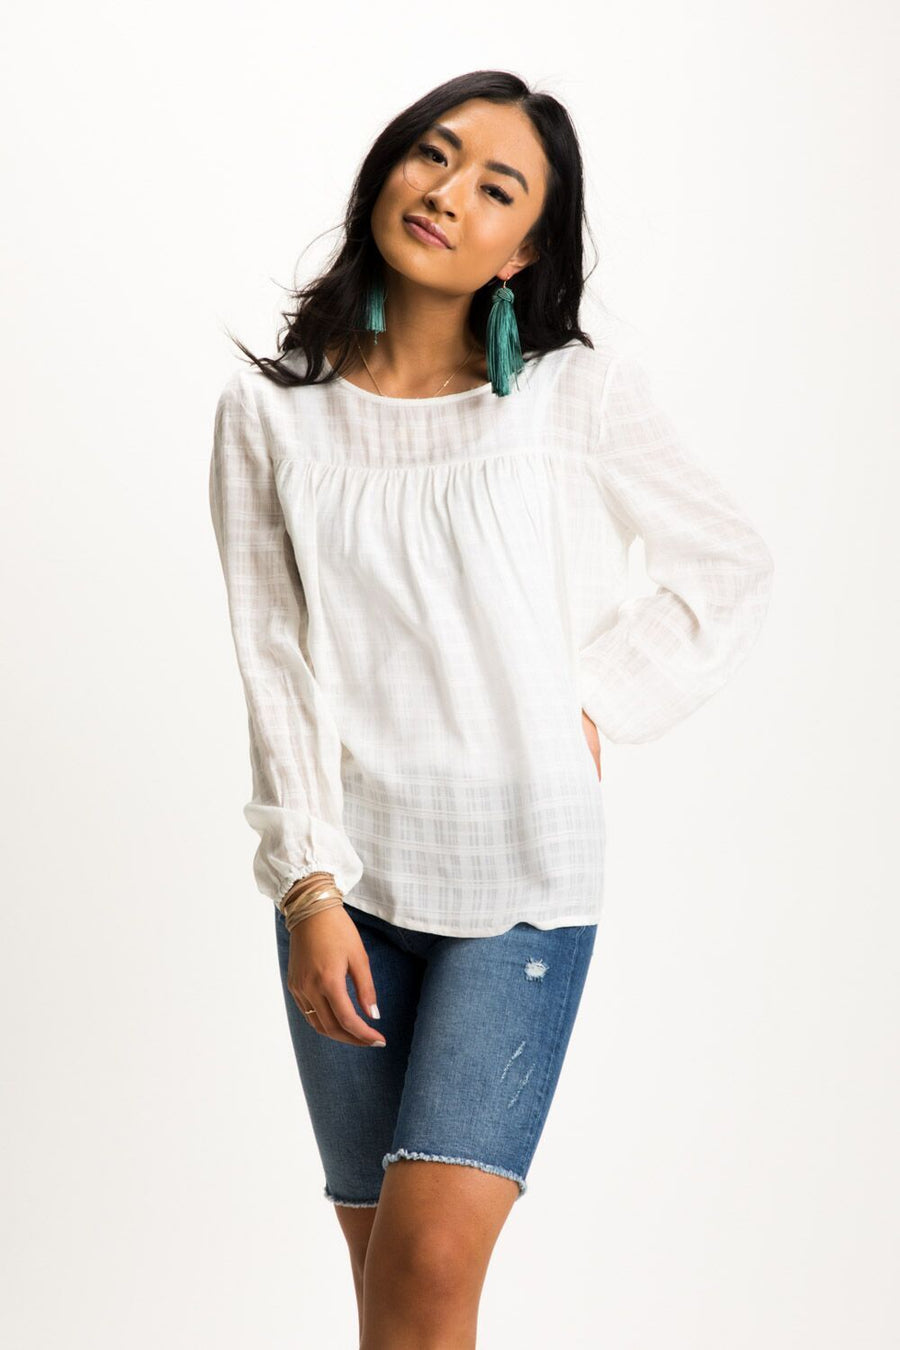 Go With The Flow Textured Gingham Top